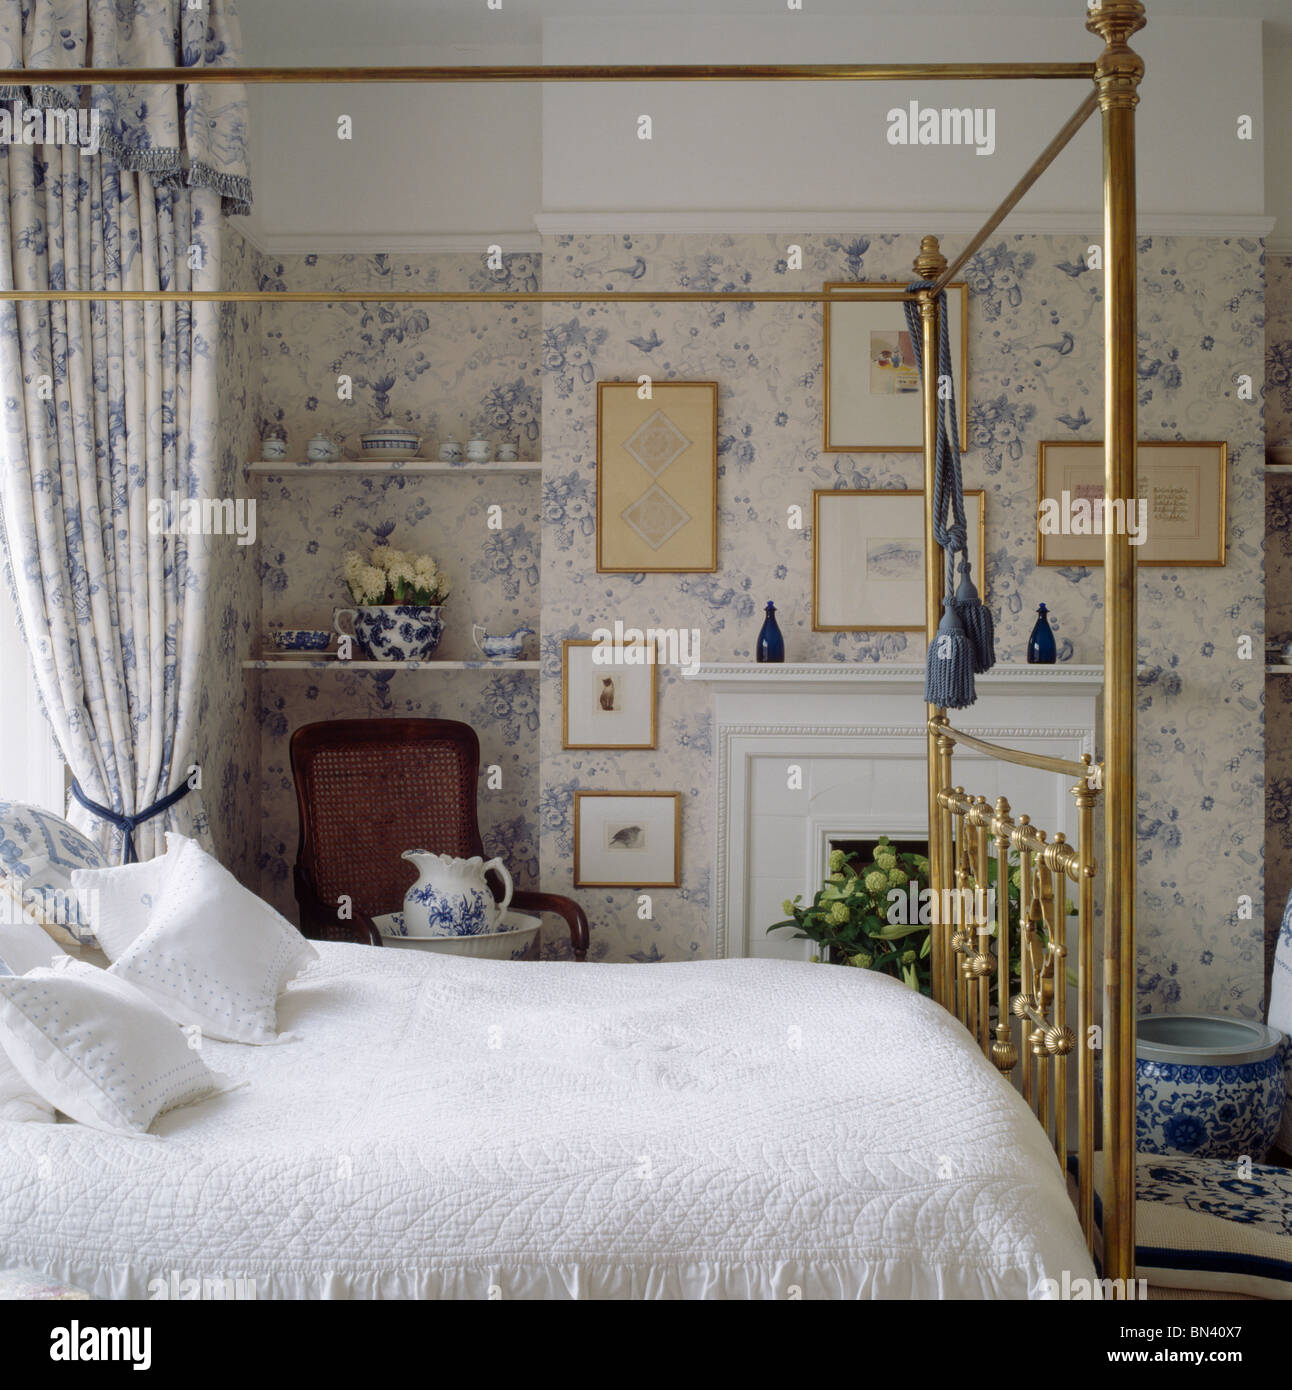 Creative Bedroom Wall Decor Brass Bed Bedroom Design Bedroom Design Black Bedroom Cupboards At Ikea: White Quilt On Brass Bed With Blue Floral Drapes In